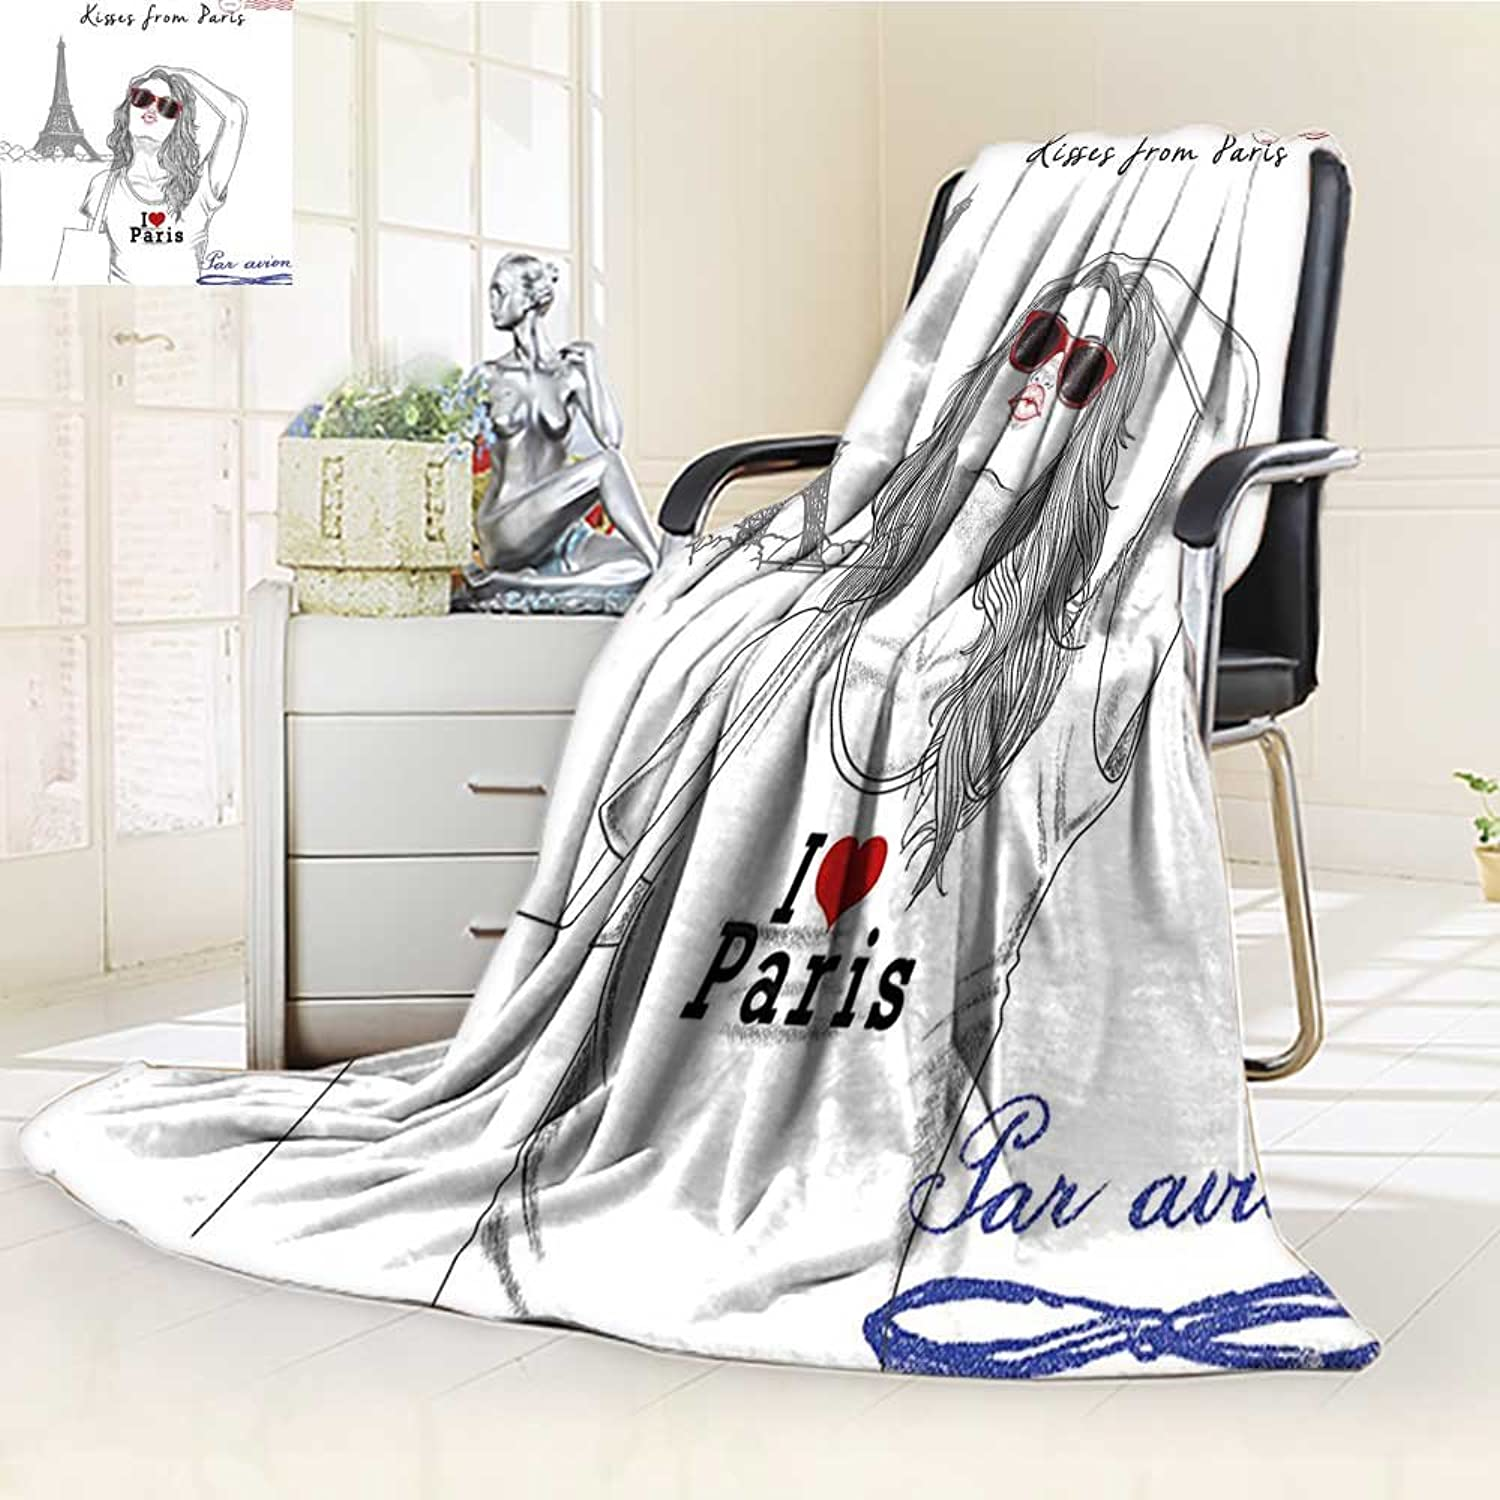 YOYI-HOME Throw Duplex Printed Blanket from Paris A Girl with Sunglasses Posing in fornt of Eiffel Tower Red White Warm Microfiber All Season Blanket for Bed or Couch  W59 x H39.5